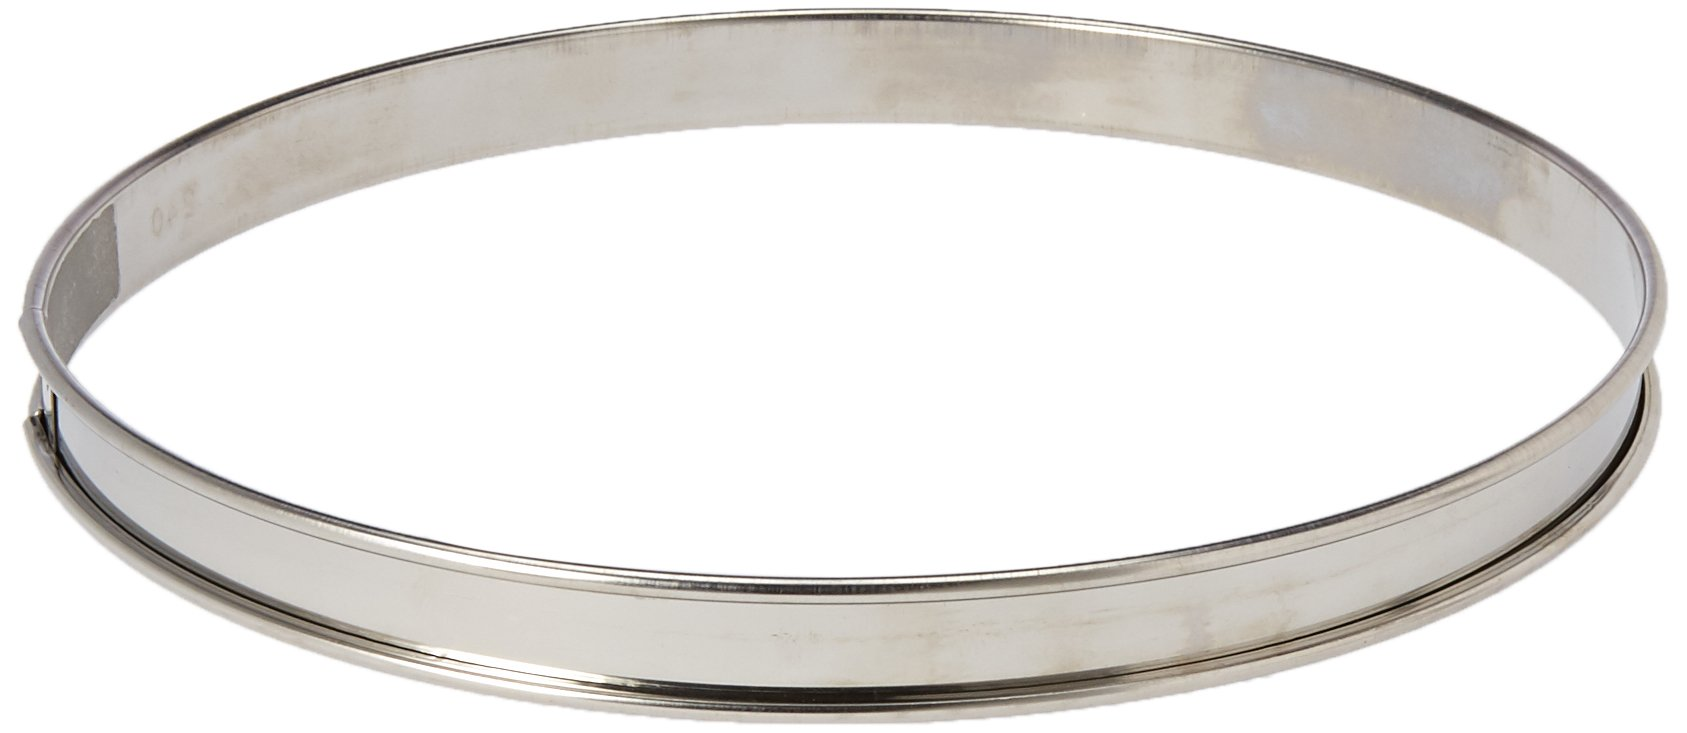 Matfer Bourgeat 371615 Plain Stainless Steel Tart Ring, 9.5'' Diameter